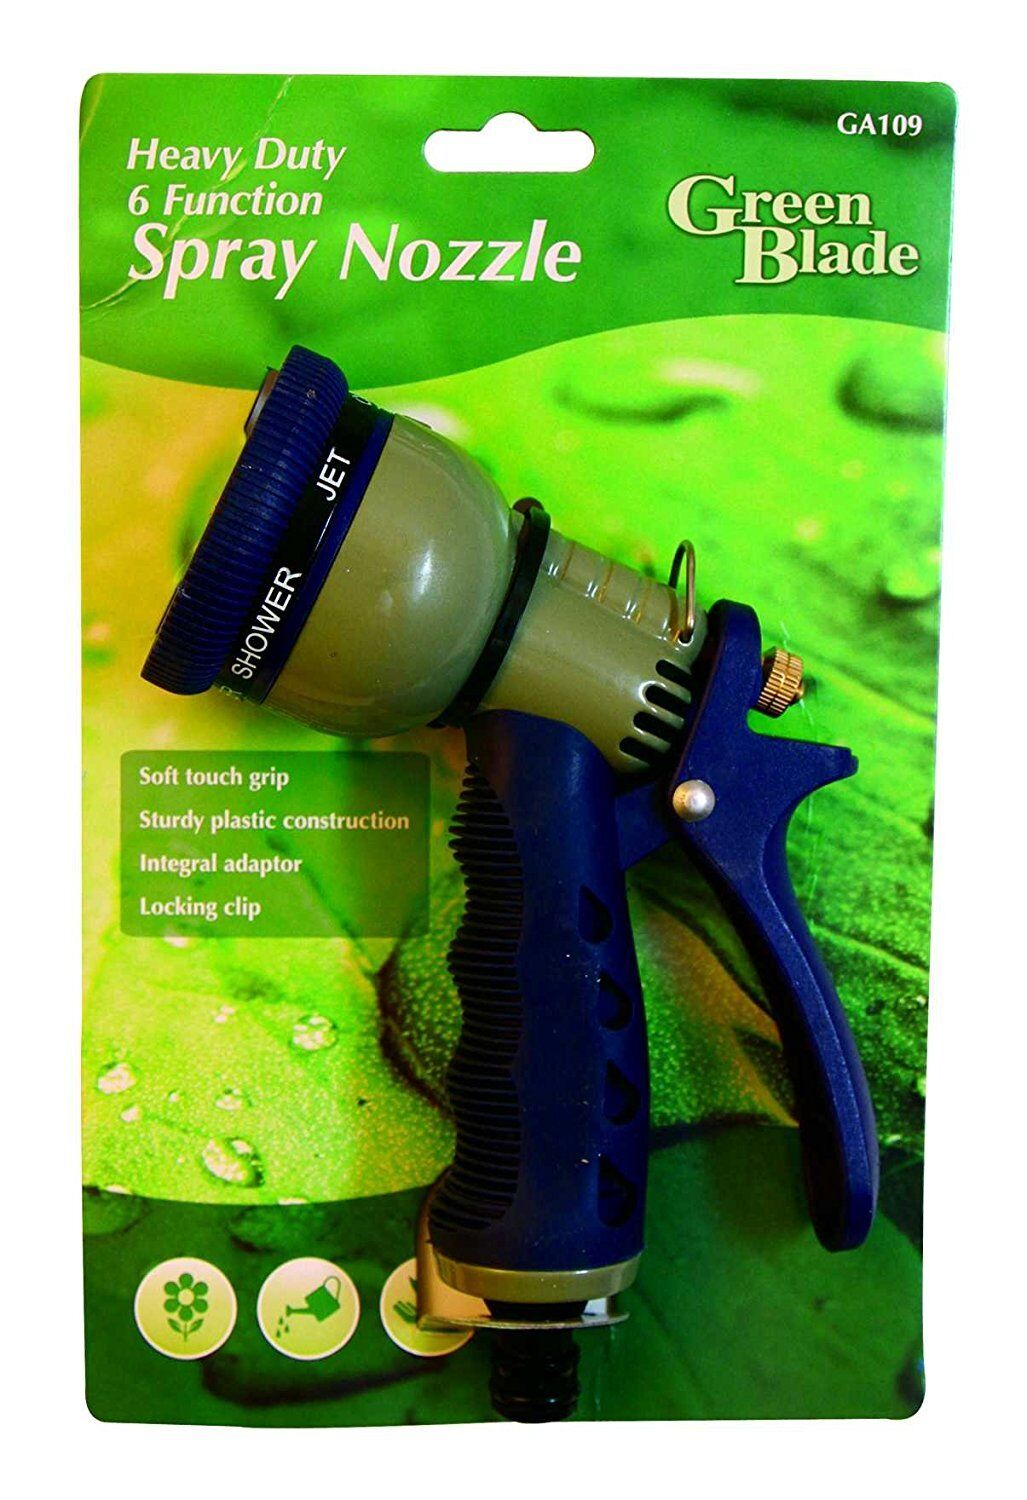 Heavy Duty Spray Water Hose Gun Nozzle With 6 Dial Functions & Soft Touch Grip